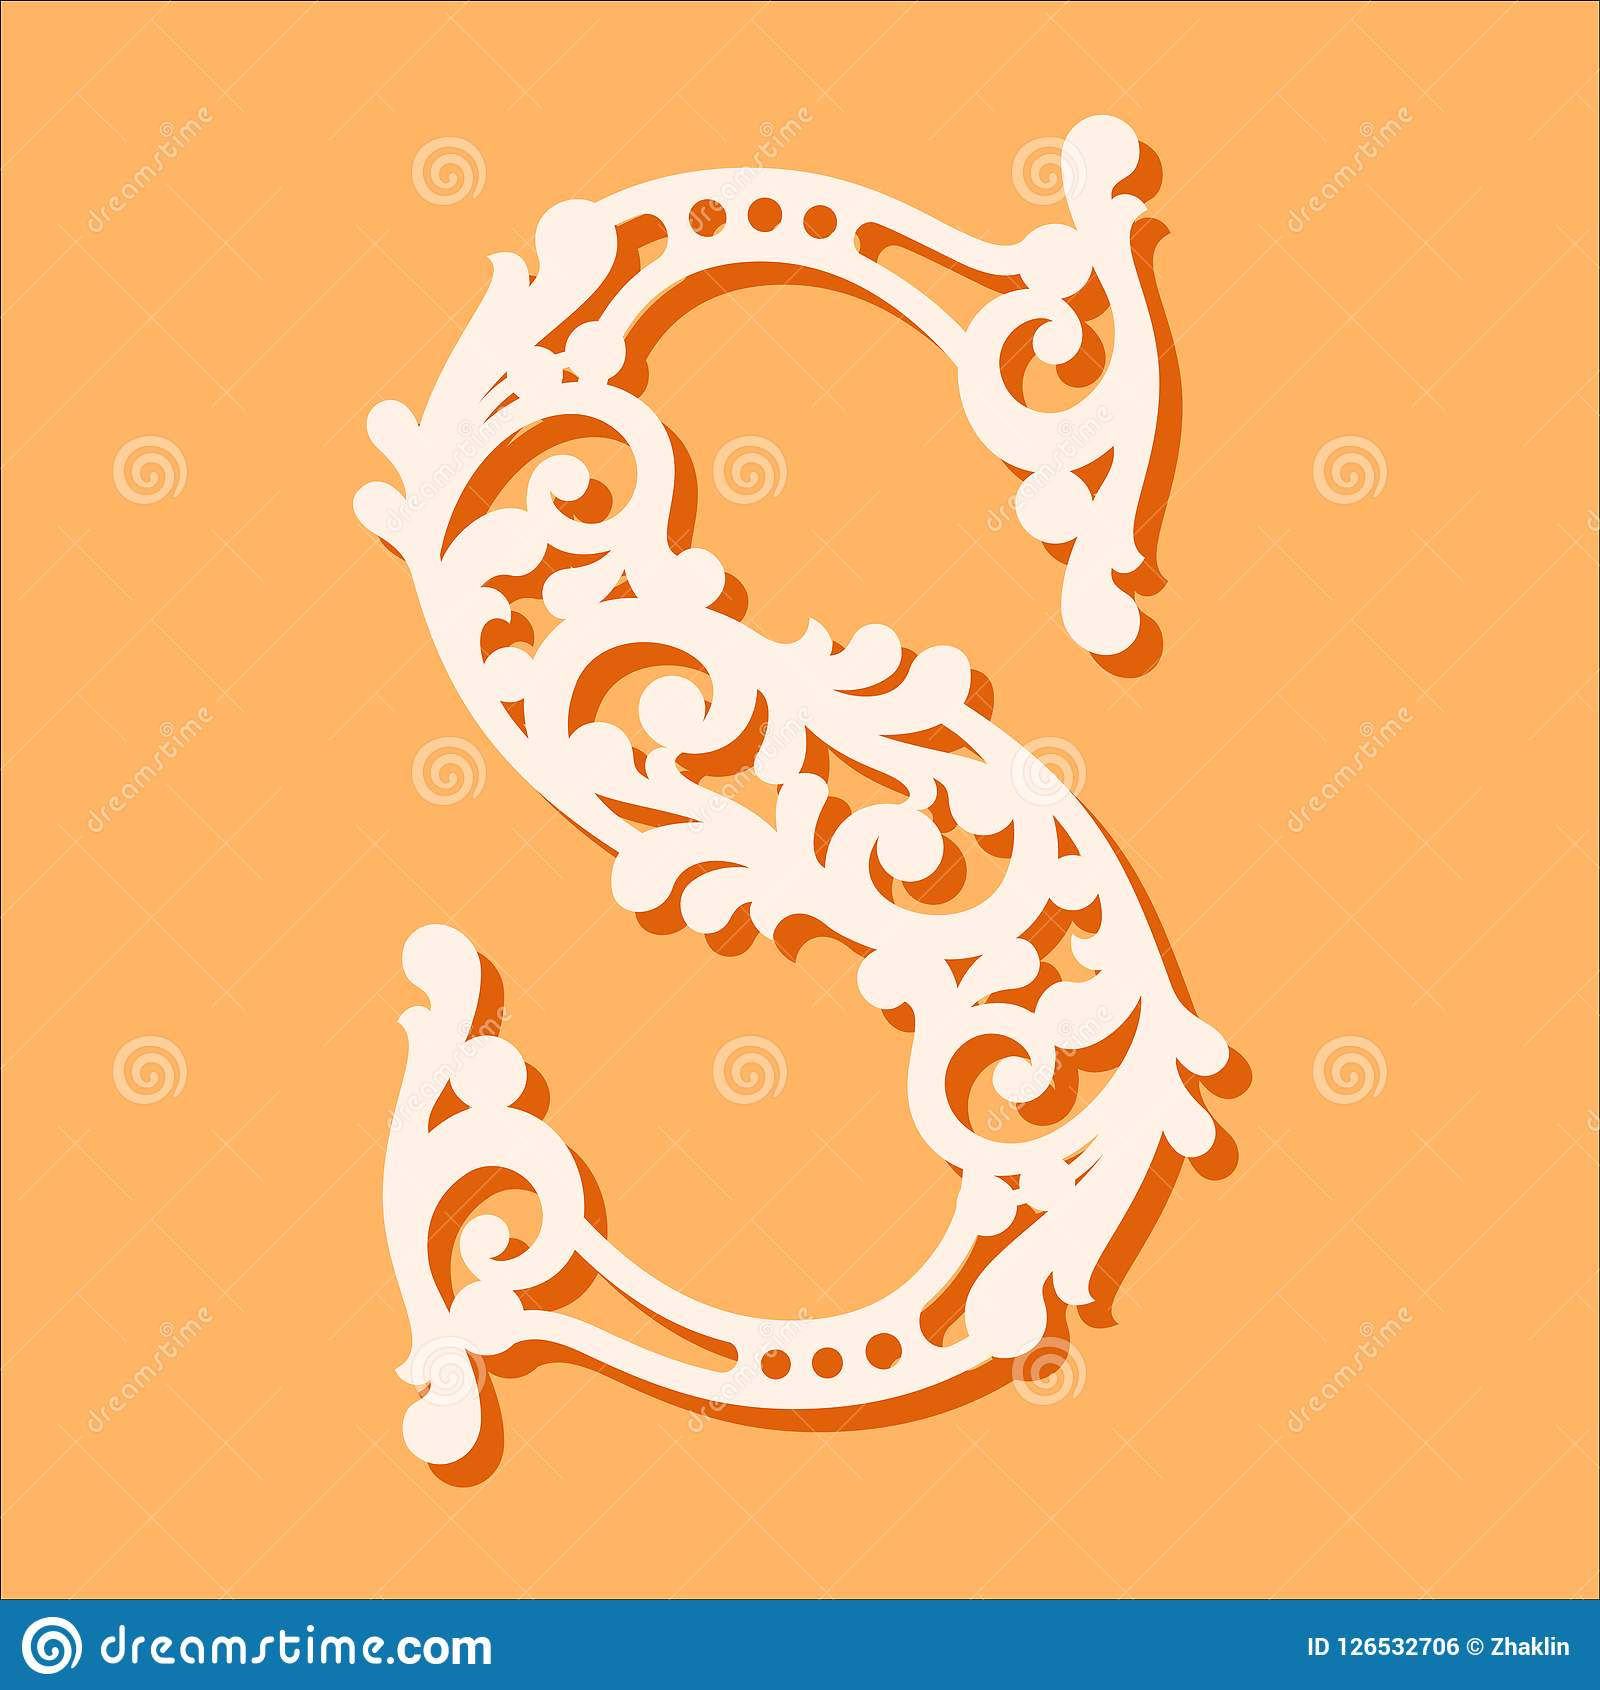 fancy letter s template  Laser Cut Template. Initial Monogram Letters. Fancy Floral ...